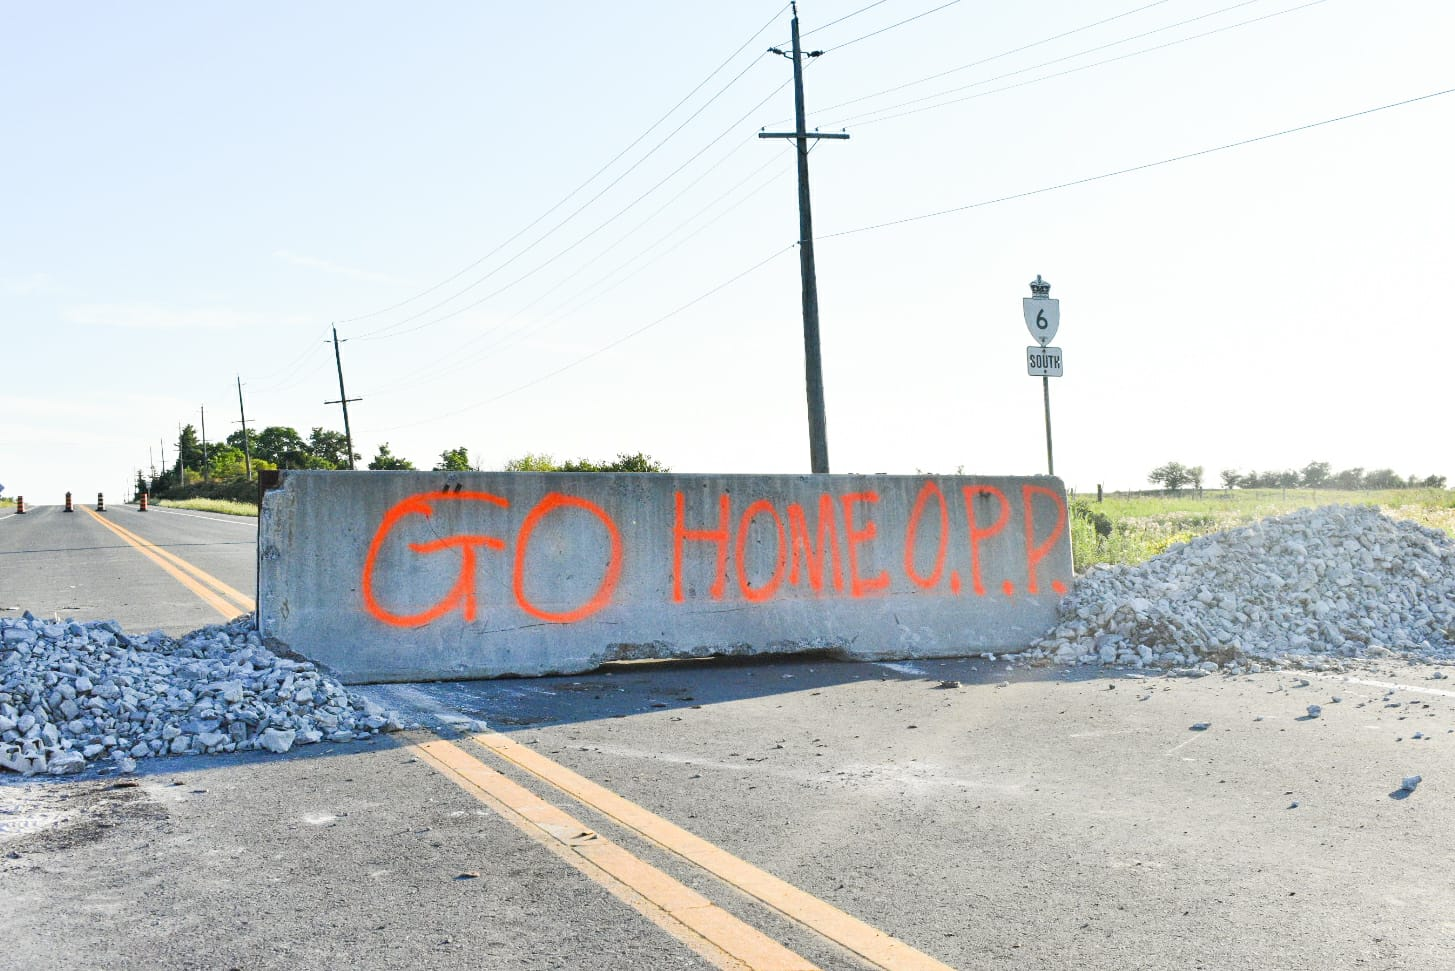 Barrier on road with grafitti